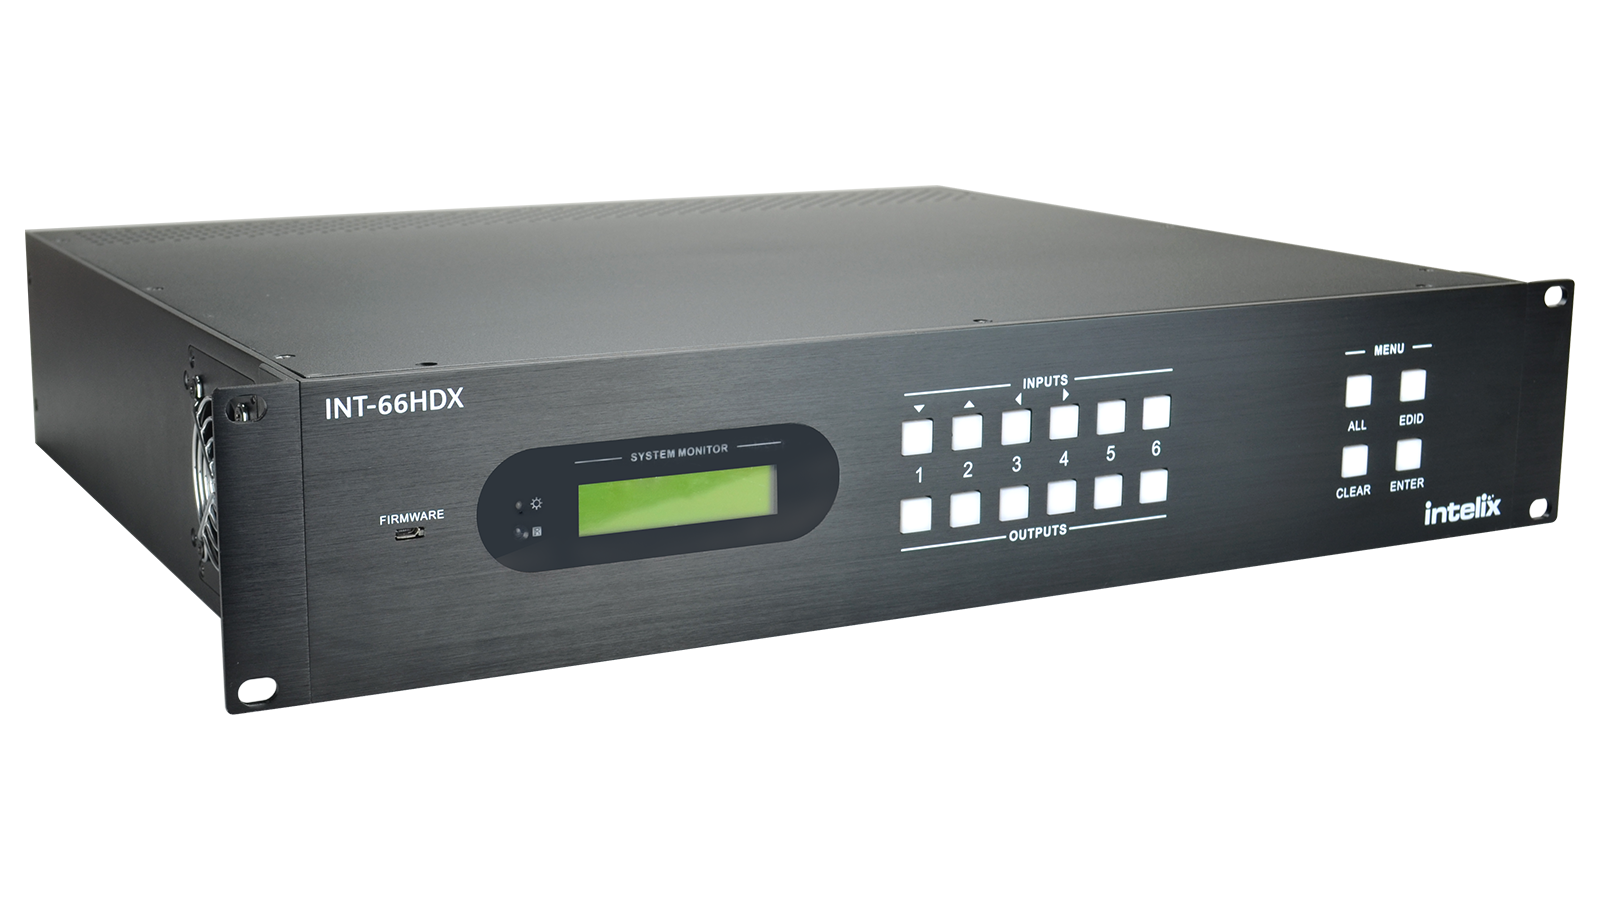 Int 66hdx 6x6 Hdmi Hdbaset Matrix Switcher With 6 Female To Rj45 Adapter Diy Serial Cable End 9 10 2016 91500 Pm No Equivalent Alternates Available For